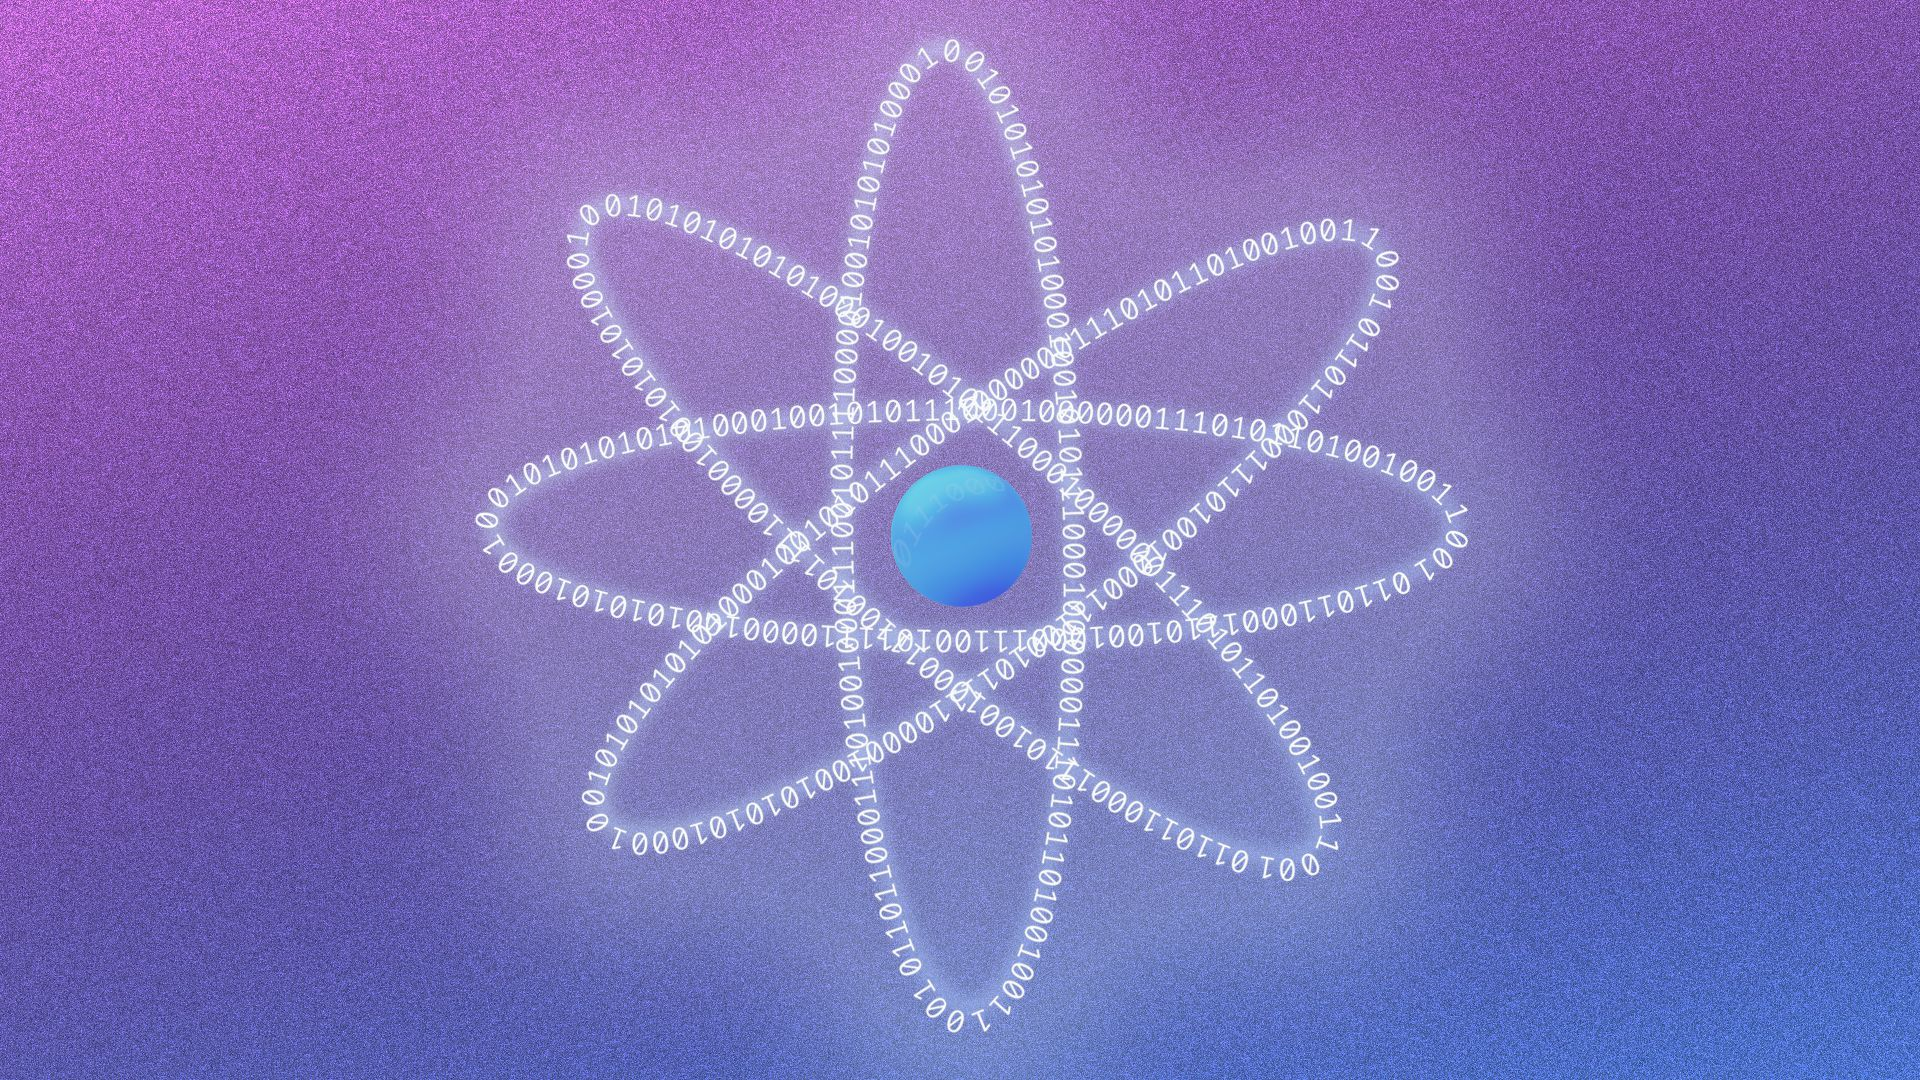 A blue orb is surrounded by binary strings, in the shape of an atom.